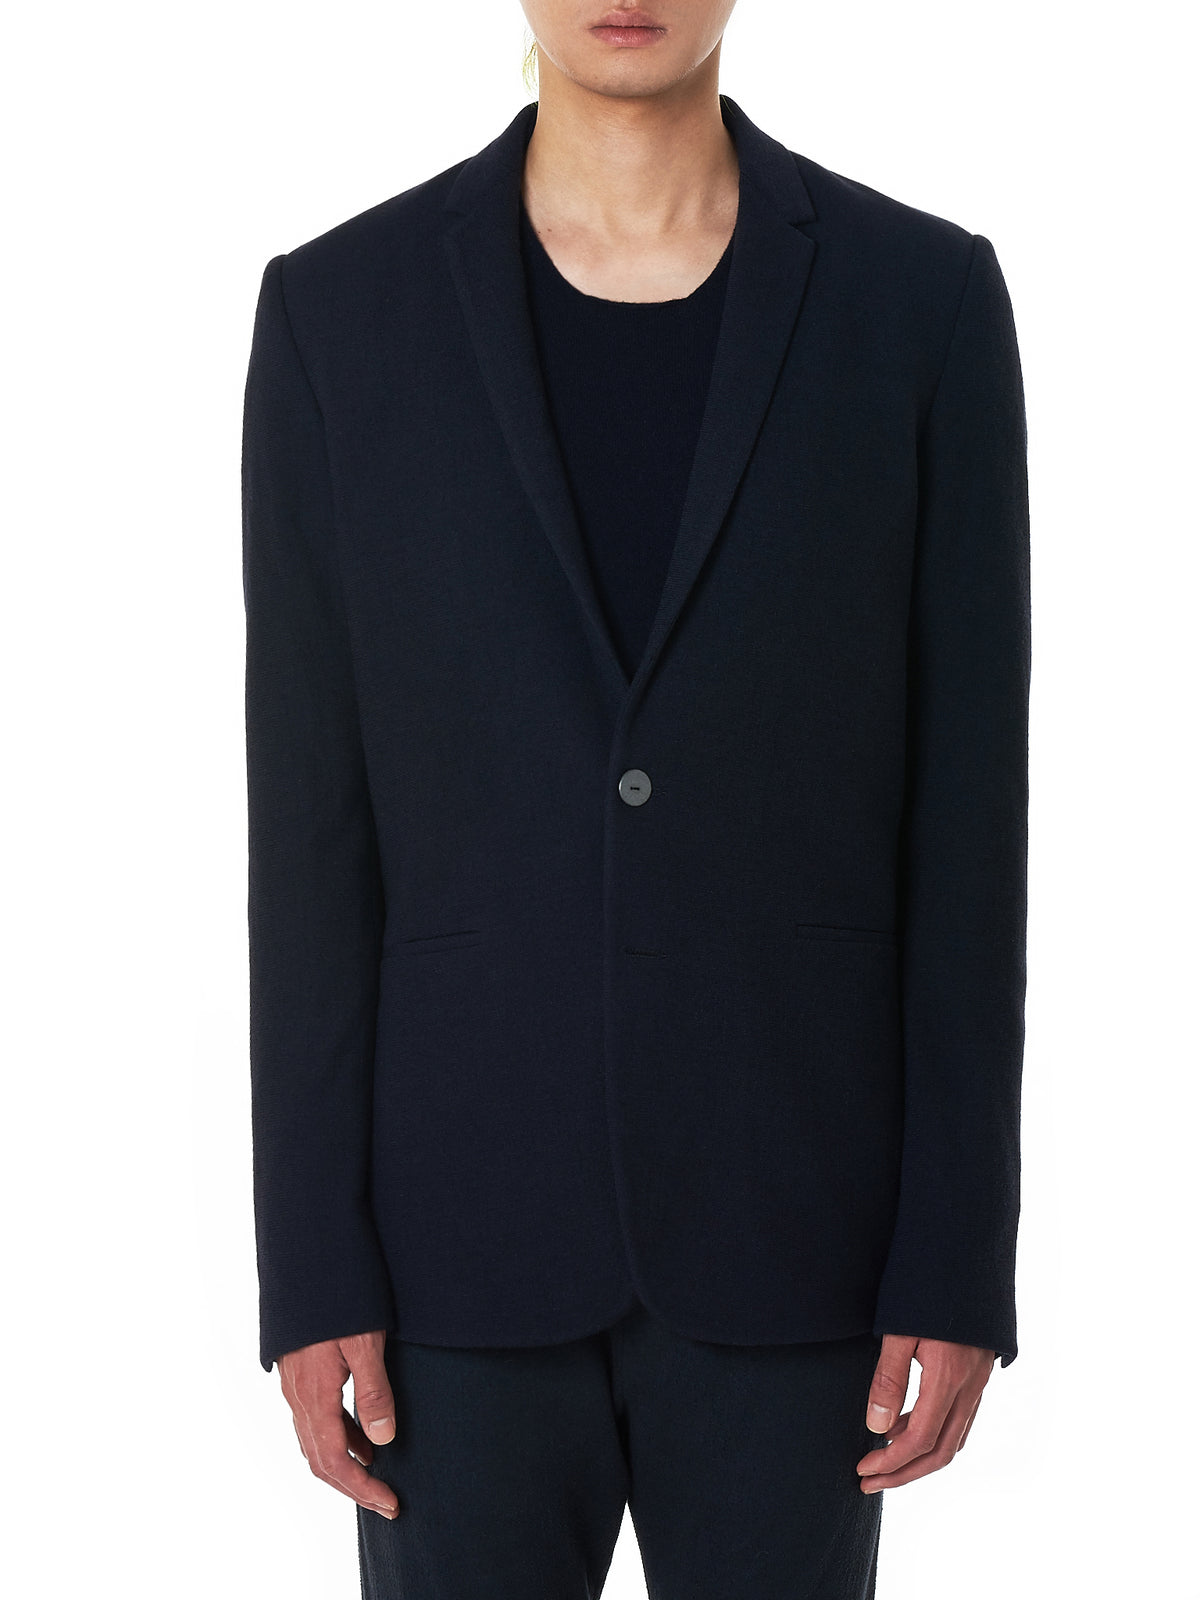 Label Under Construction Blazer - Hlorenzo Front